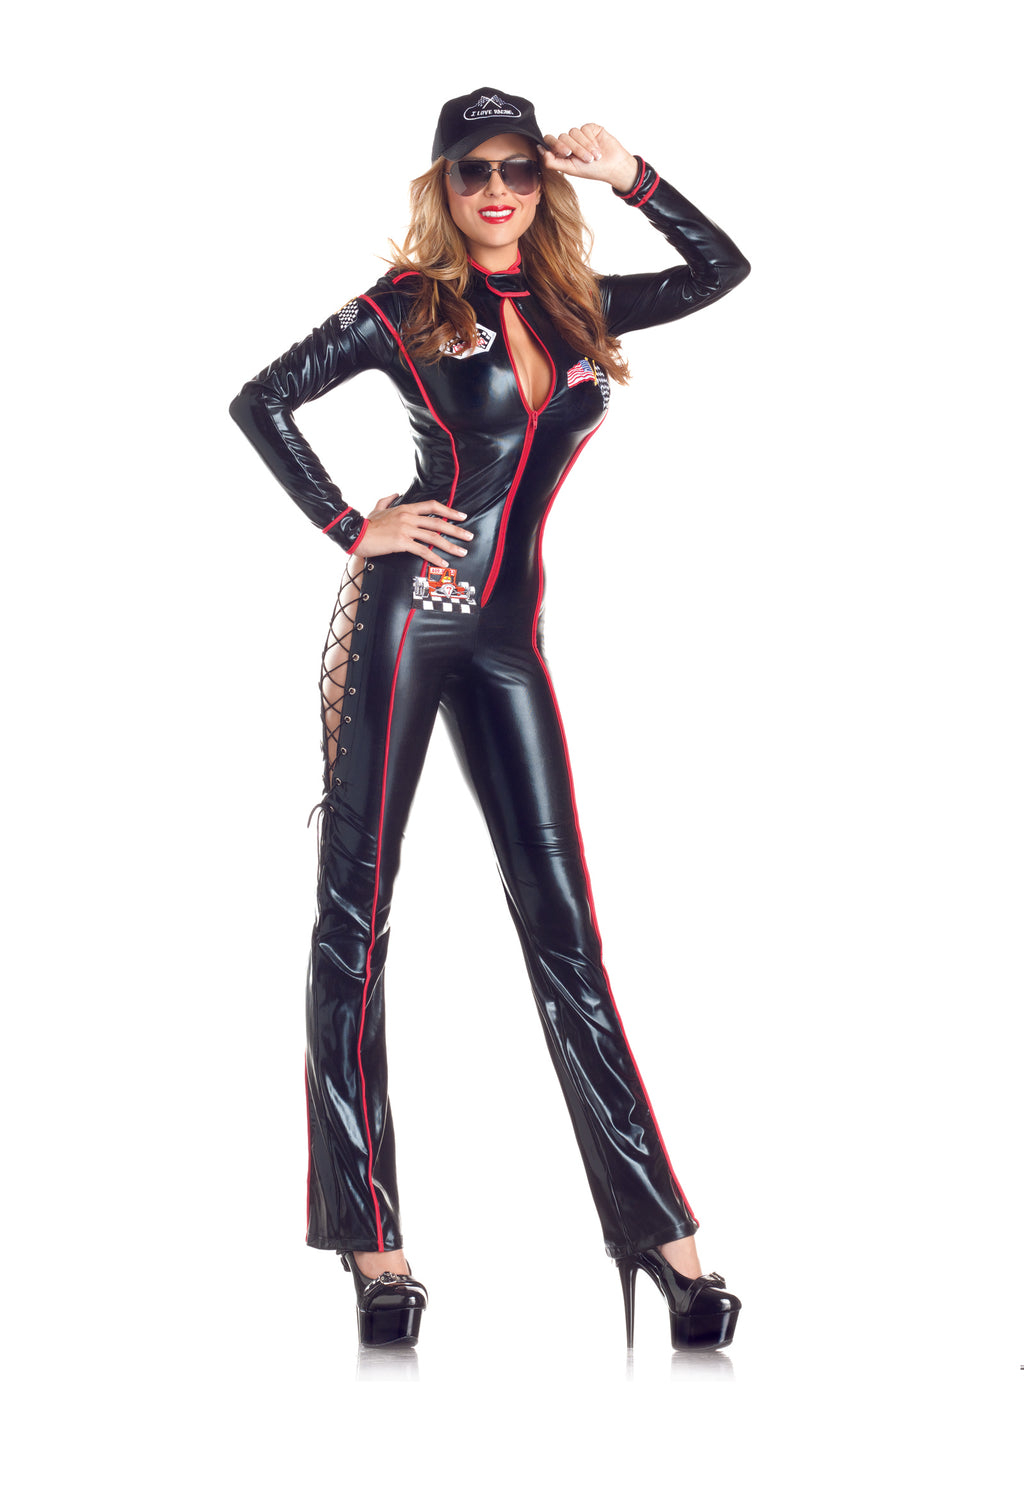 Adult-Women's-3-Piece-Sexy-Race-Car-Driver-Black-Jumpsuit-Halloween-Party-Costume-